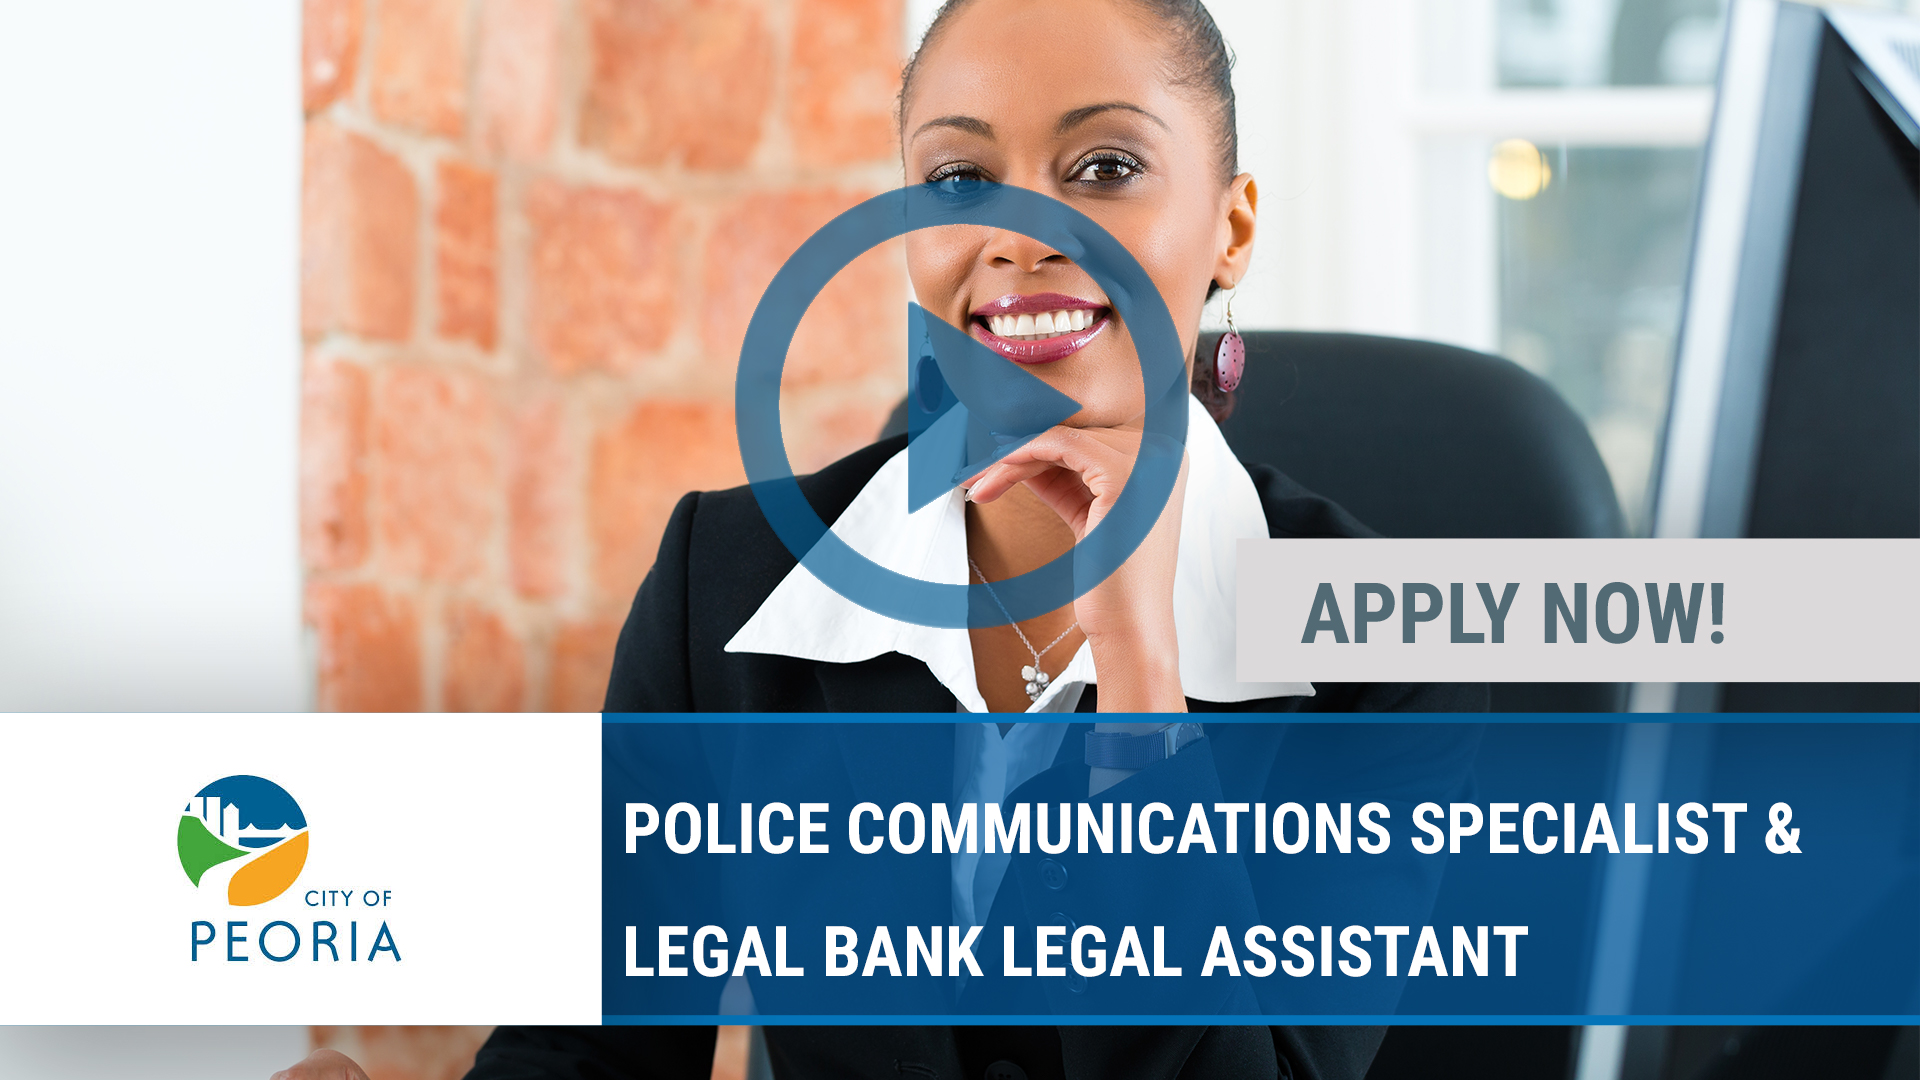 Watch our careers video for available job opening POLICE COMMUNICATIONS SPECIALIST & LEGAL BANK LEG in Peoria, IL